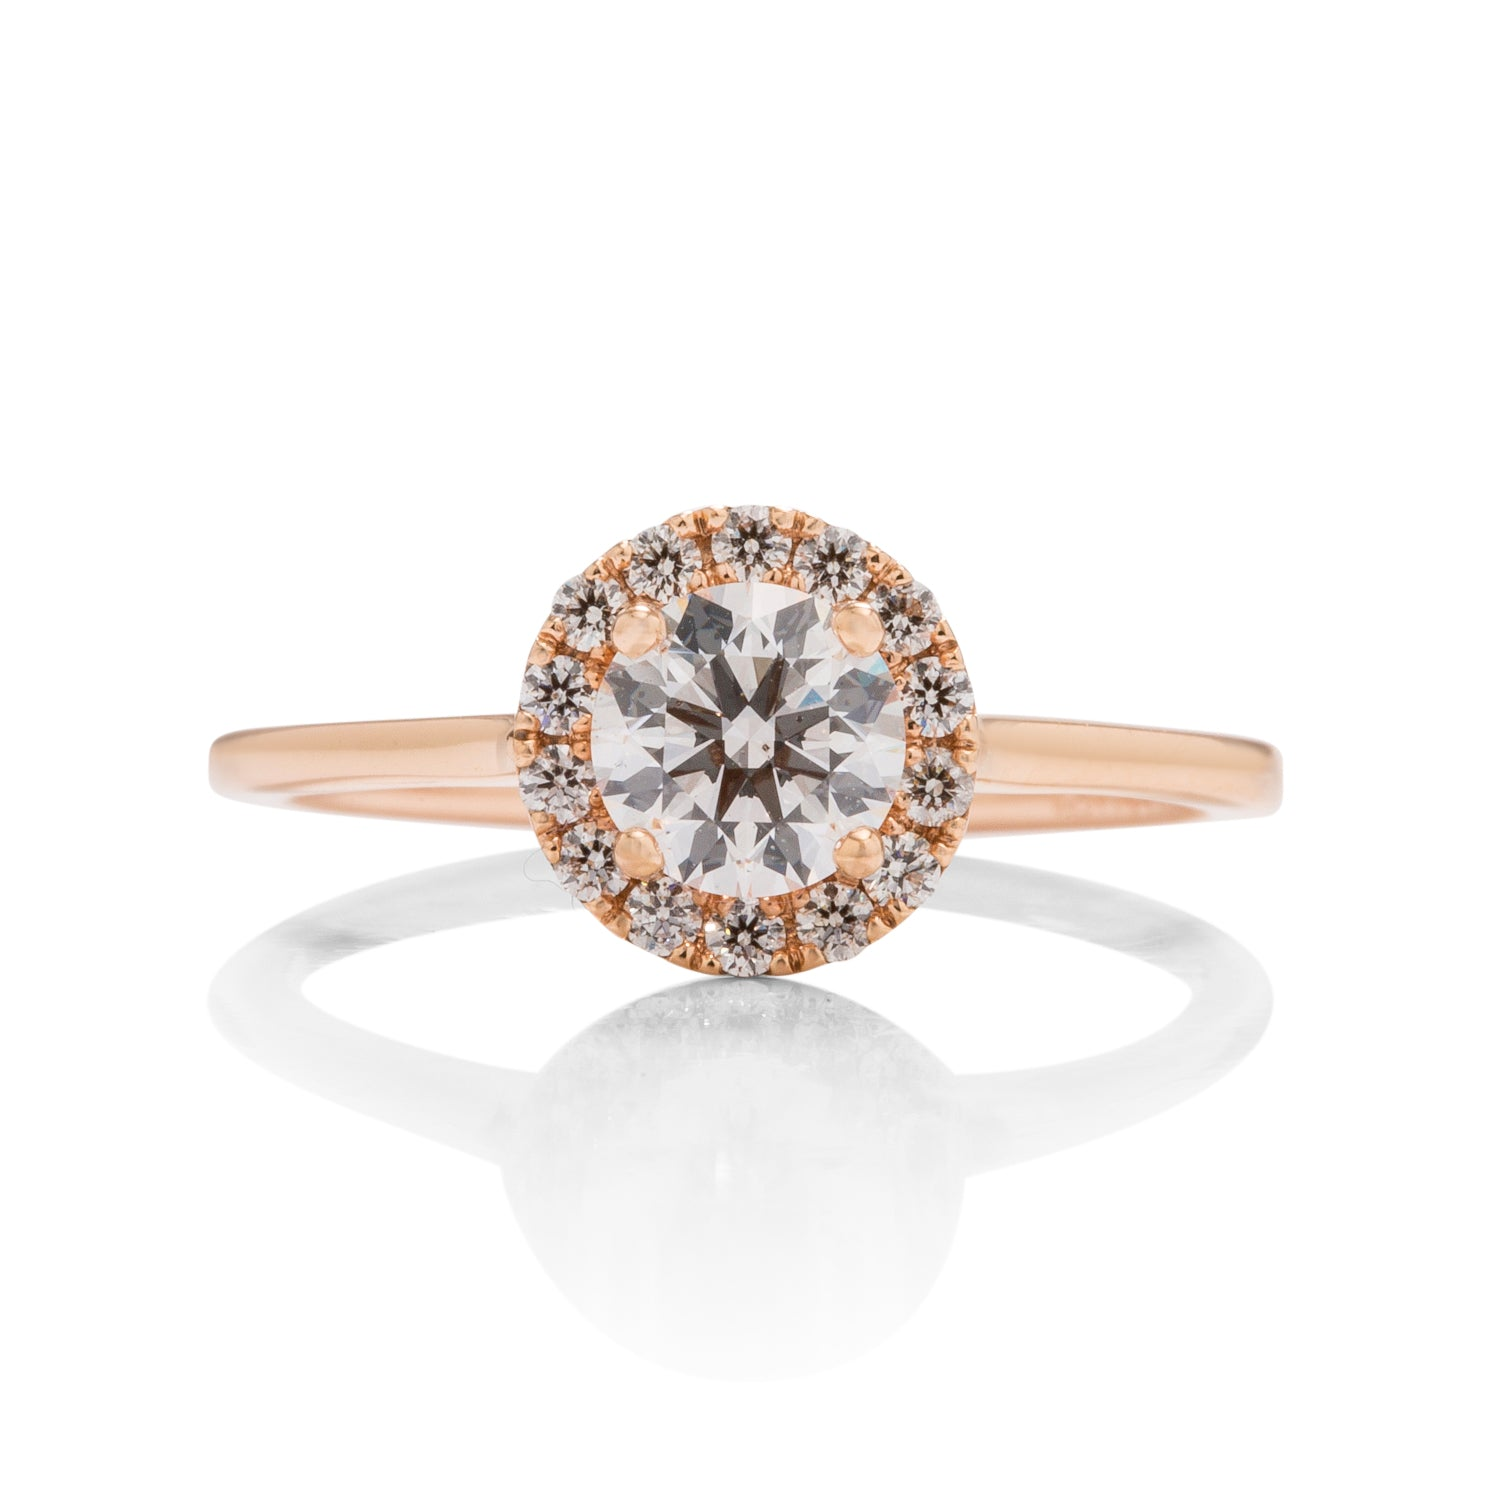 18k Rose Gold Diamond Halo Engagement Ring - Charles Koll Jewellers